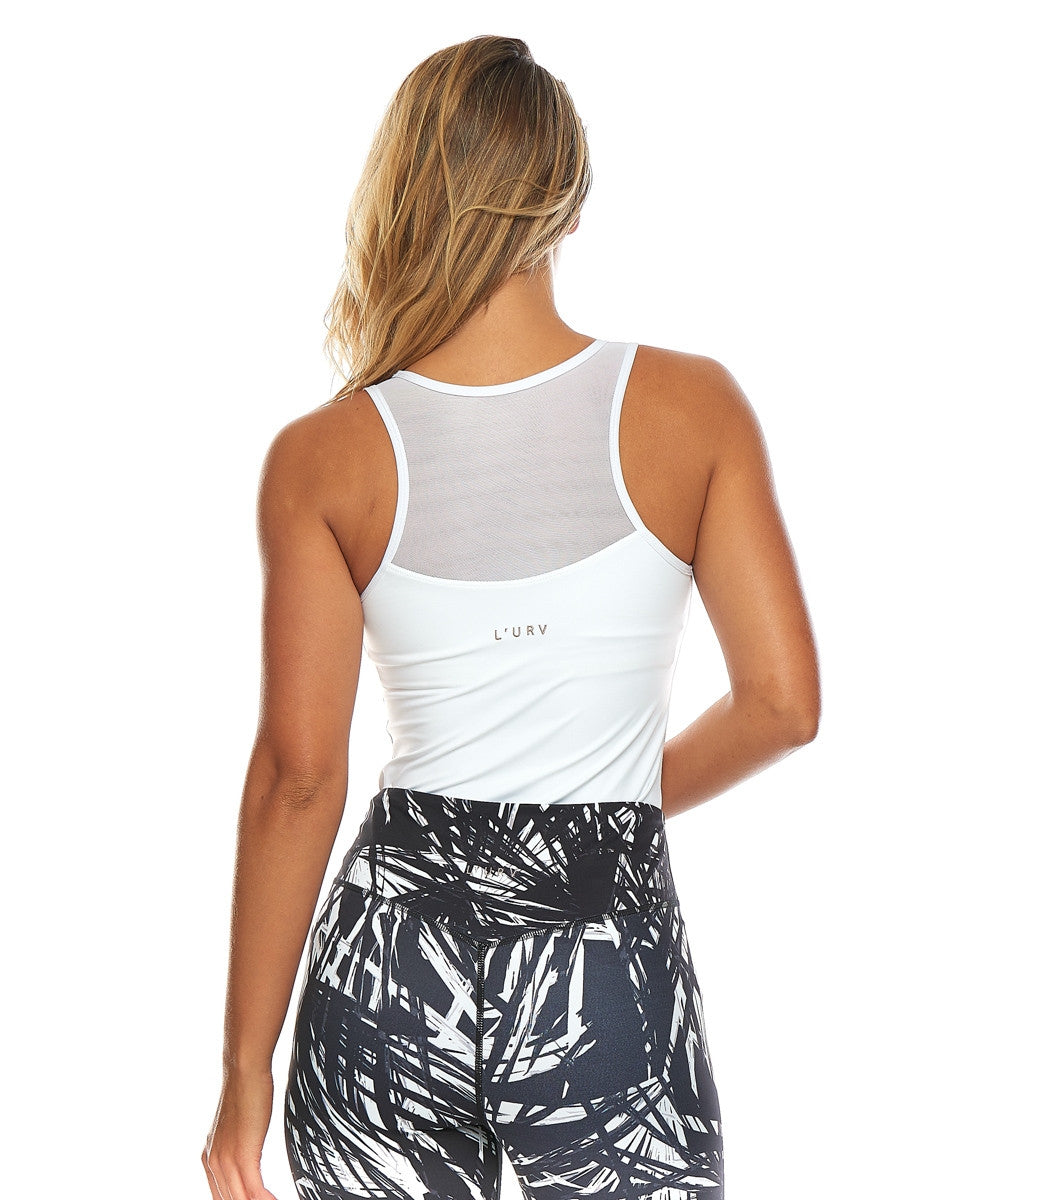 L'urv Now and then hvit Topper - myactivestyle.no